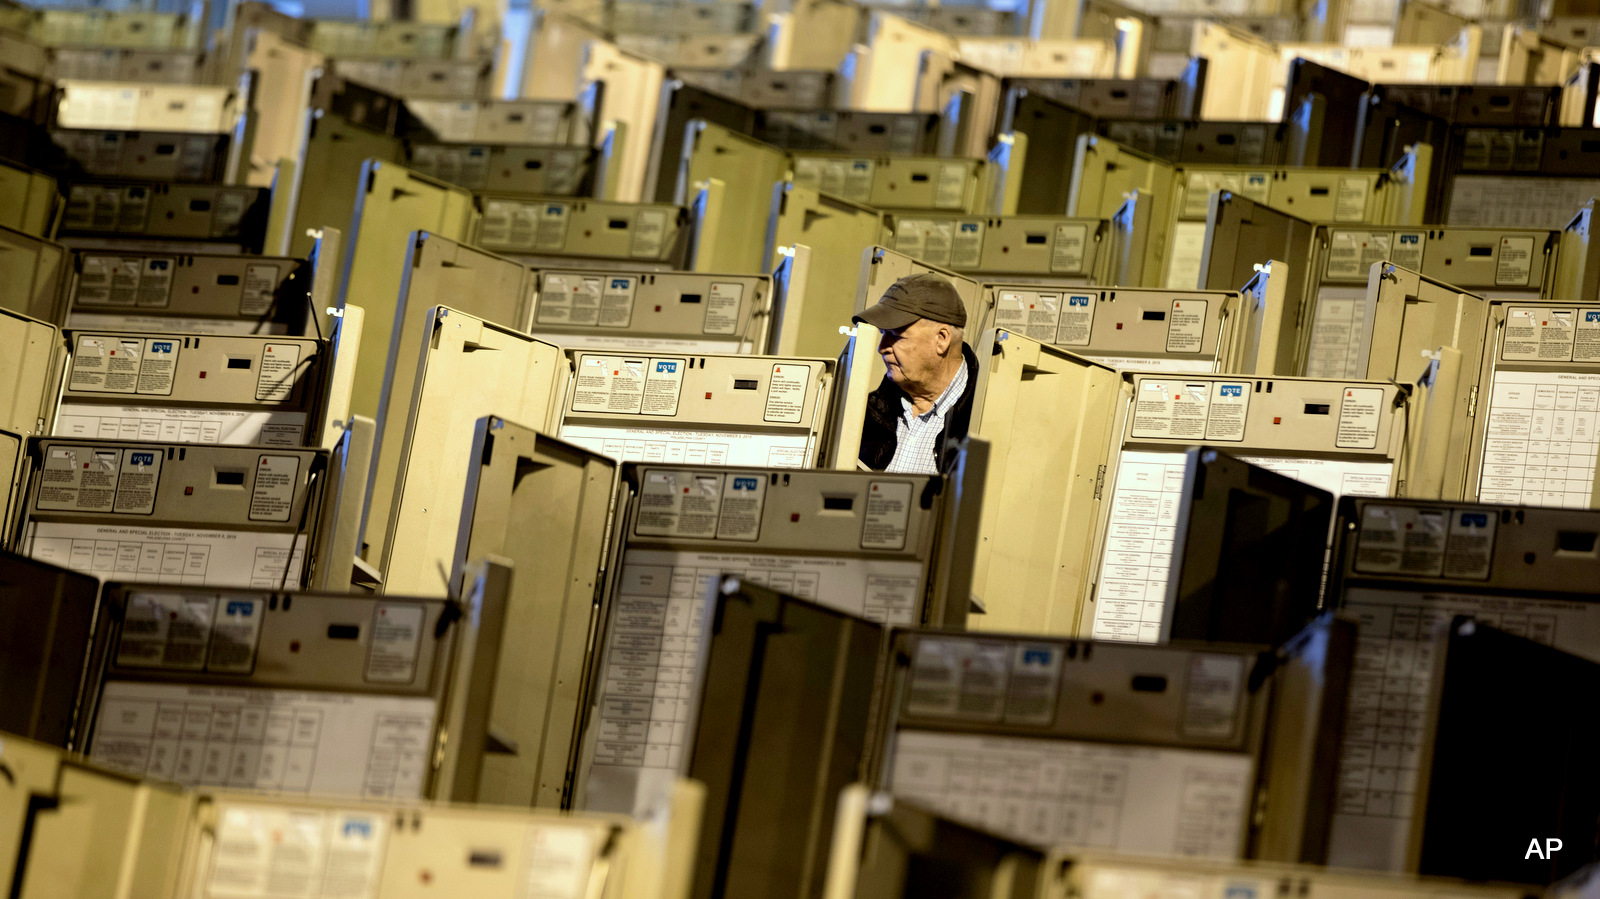 A technician works to prepare voting machines to be used in the upcoming presidential election, in Philadelphia, Friday, Oct. 14, 2016.